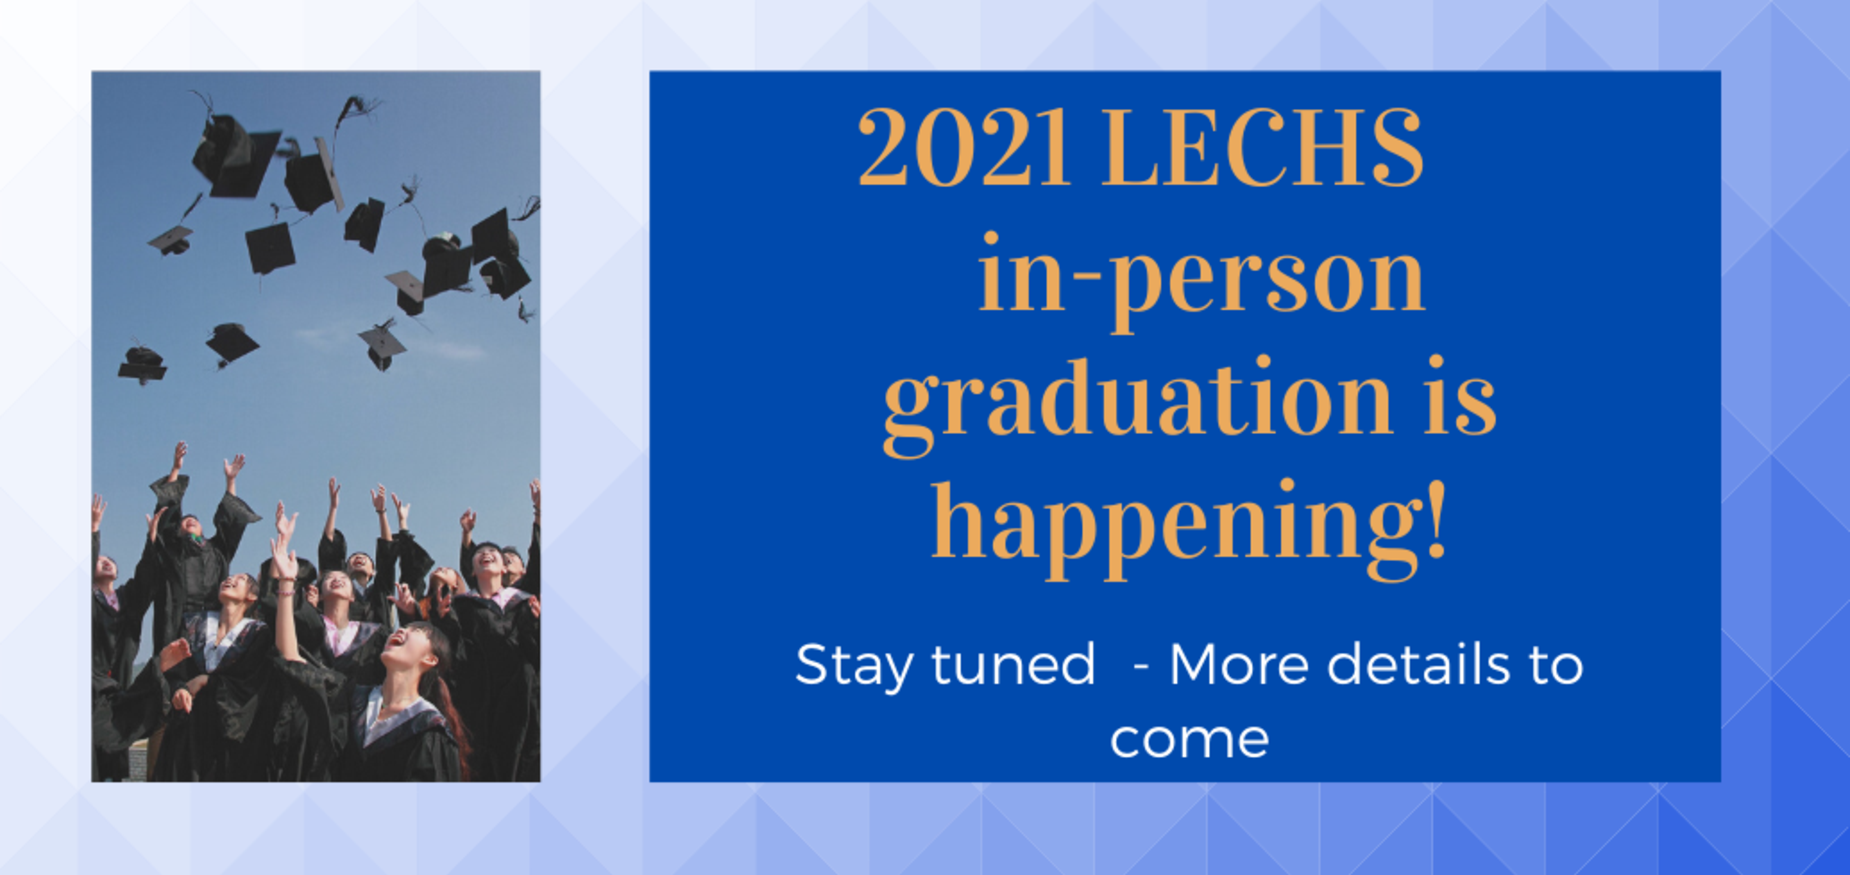 2021 graduation is happening! Stay tuned - more details to come